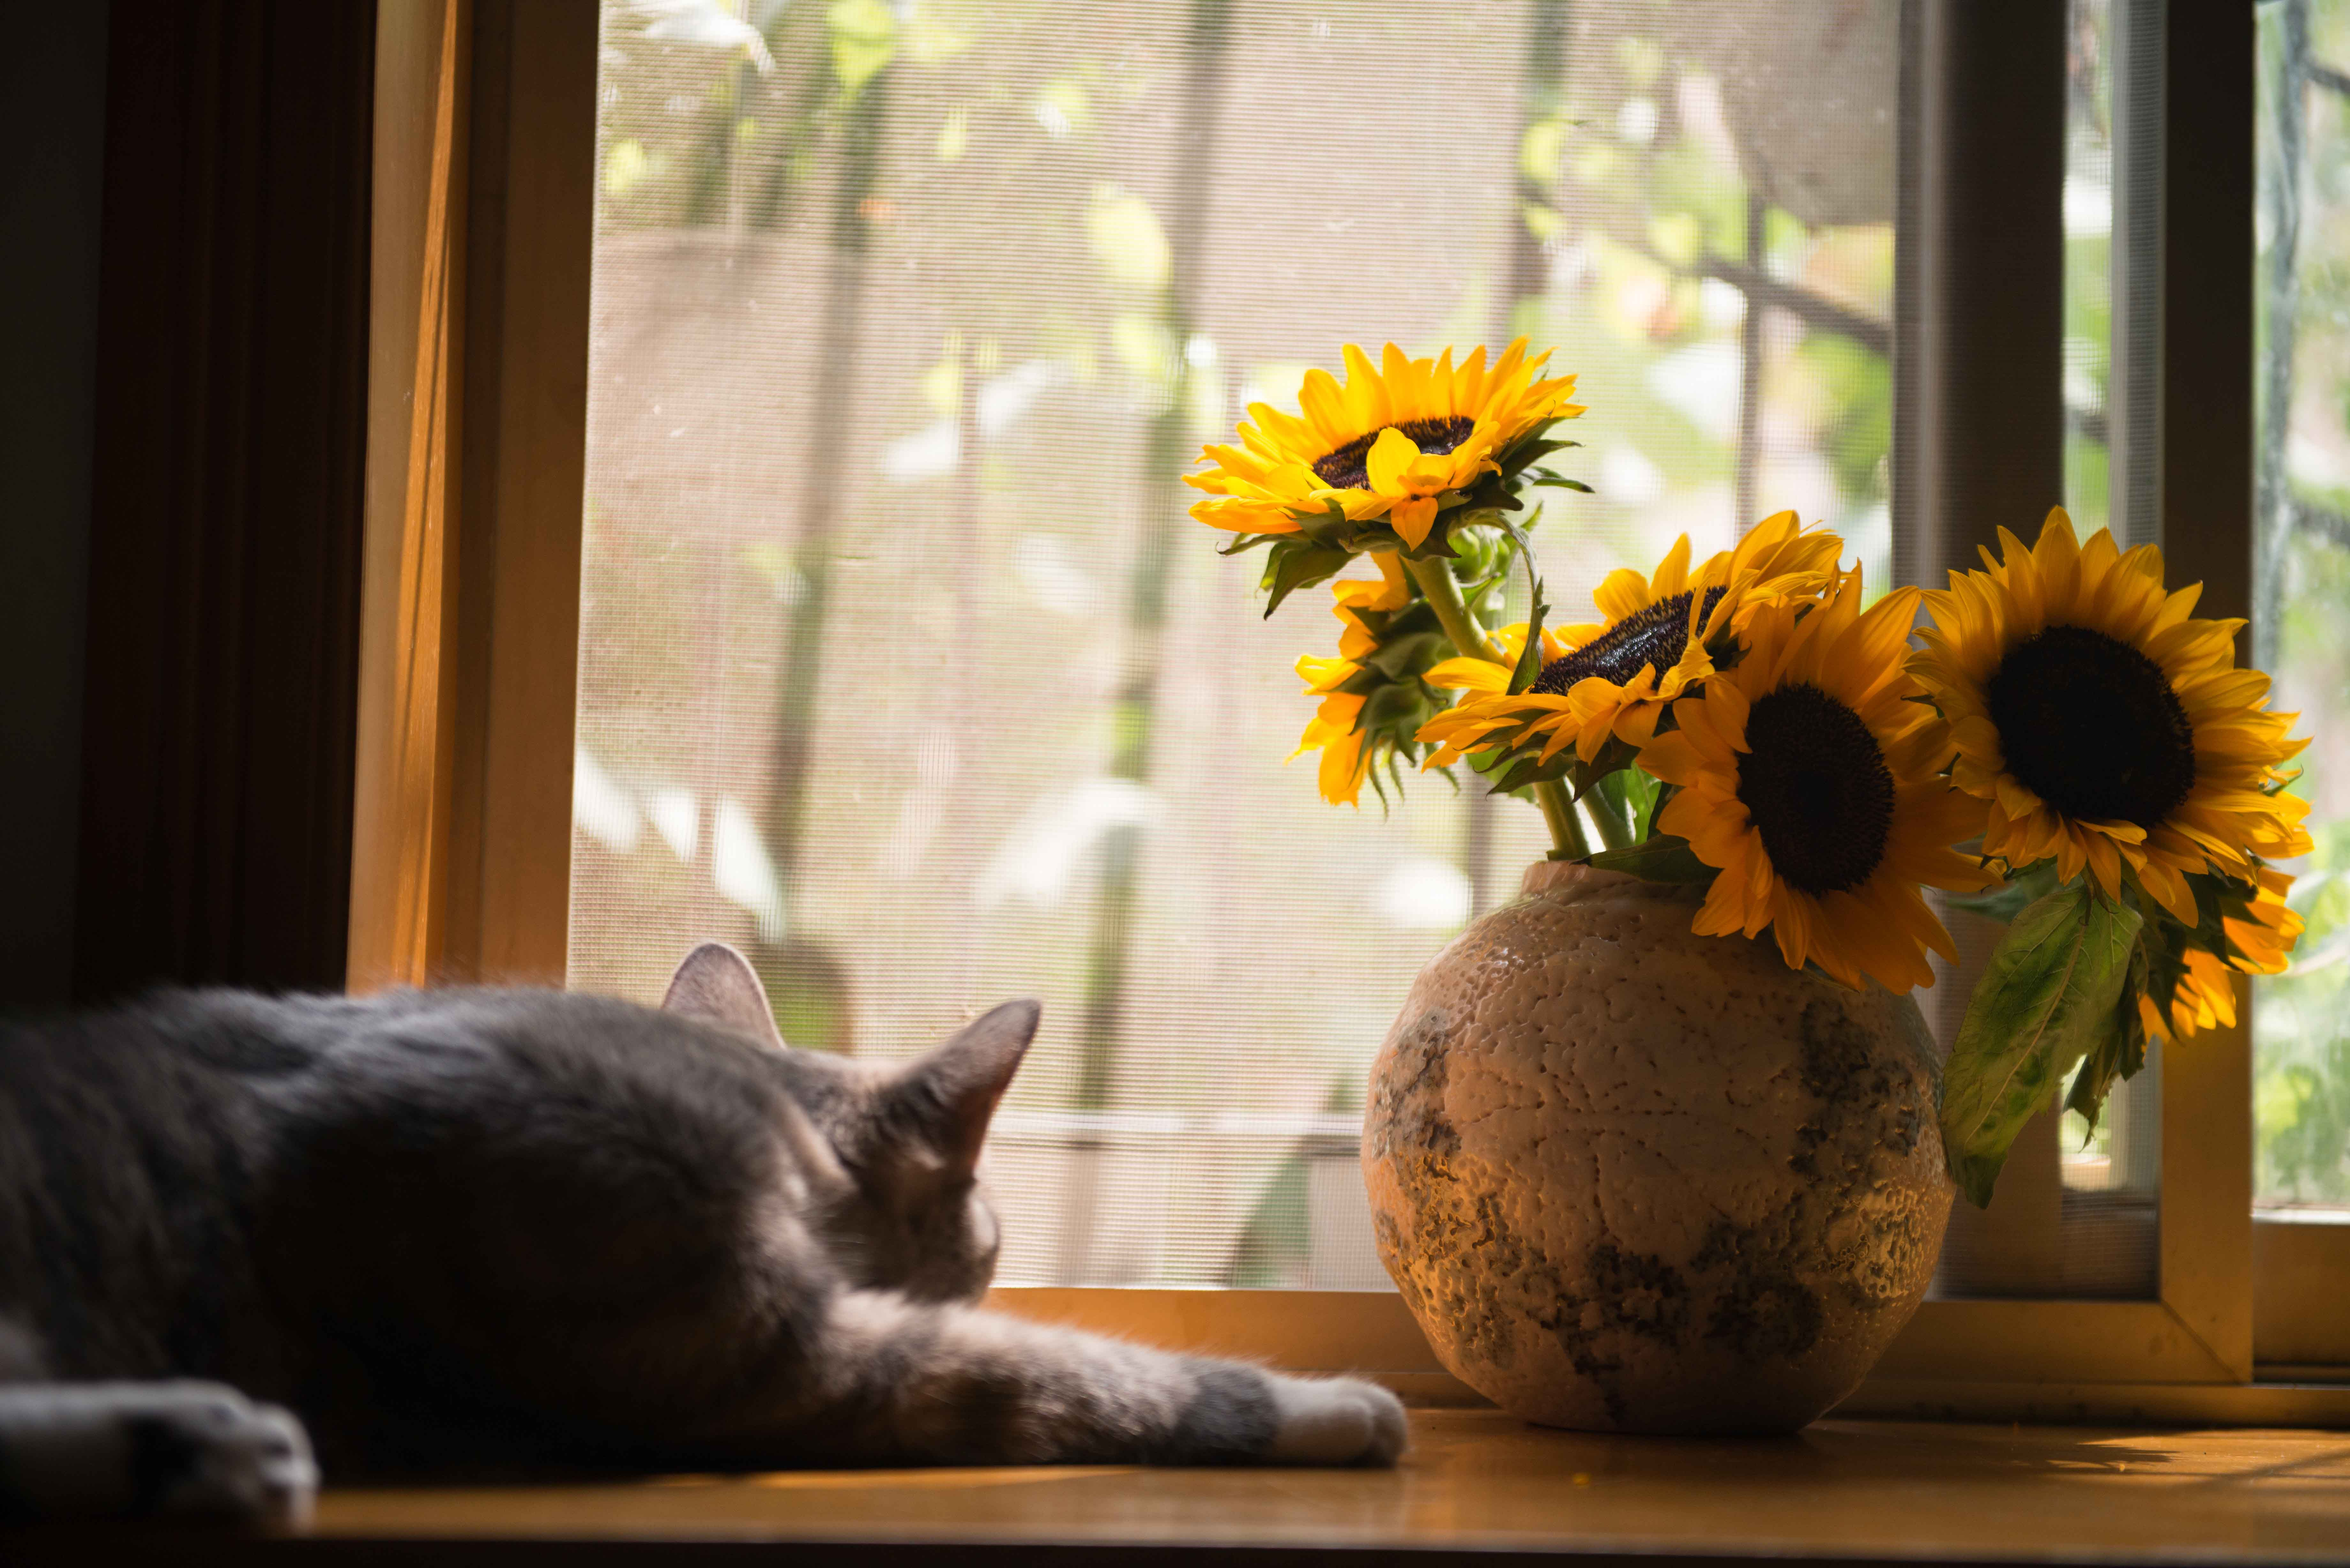 Gray Cat Near Gray Vase With Sunflower 183 Free Stock Photo